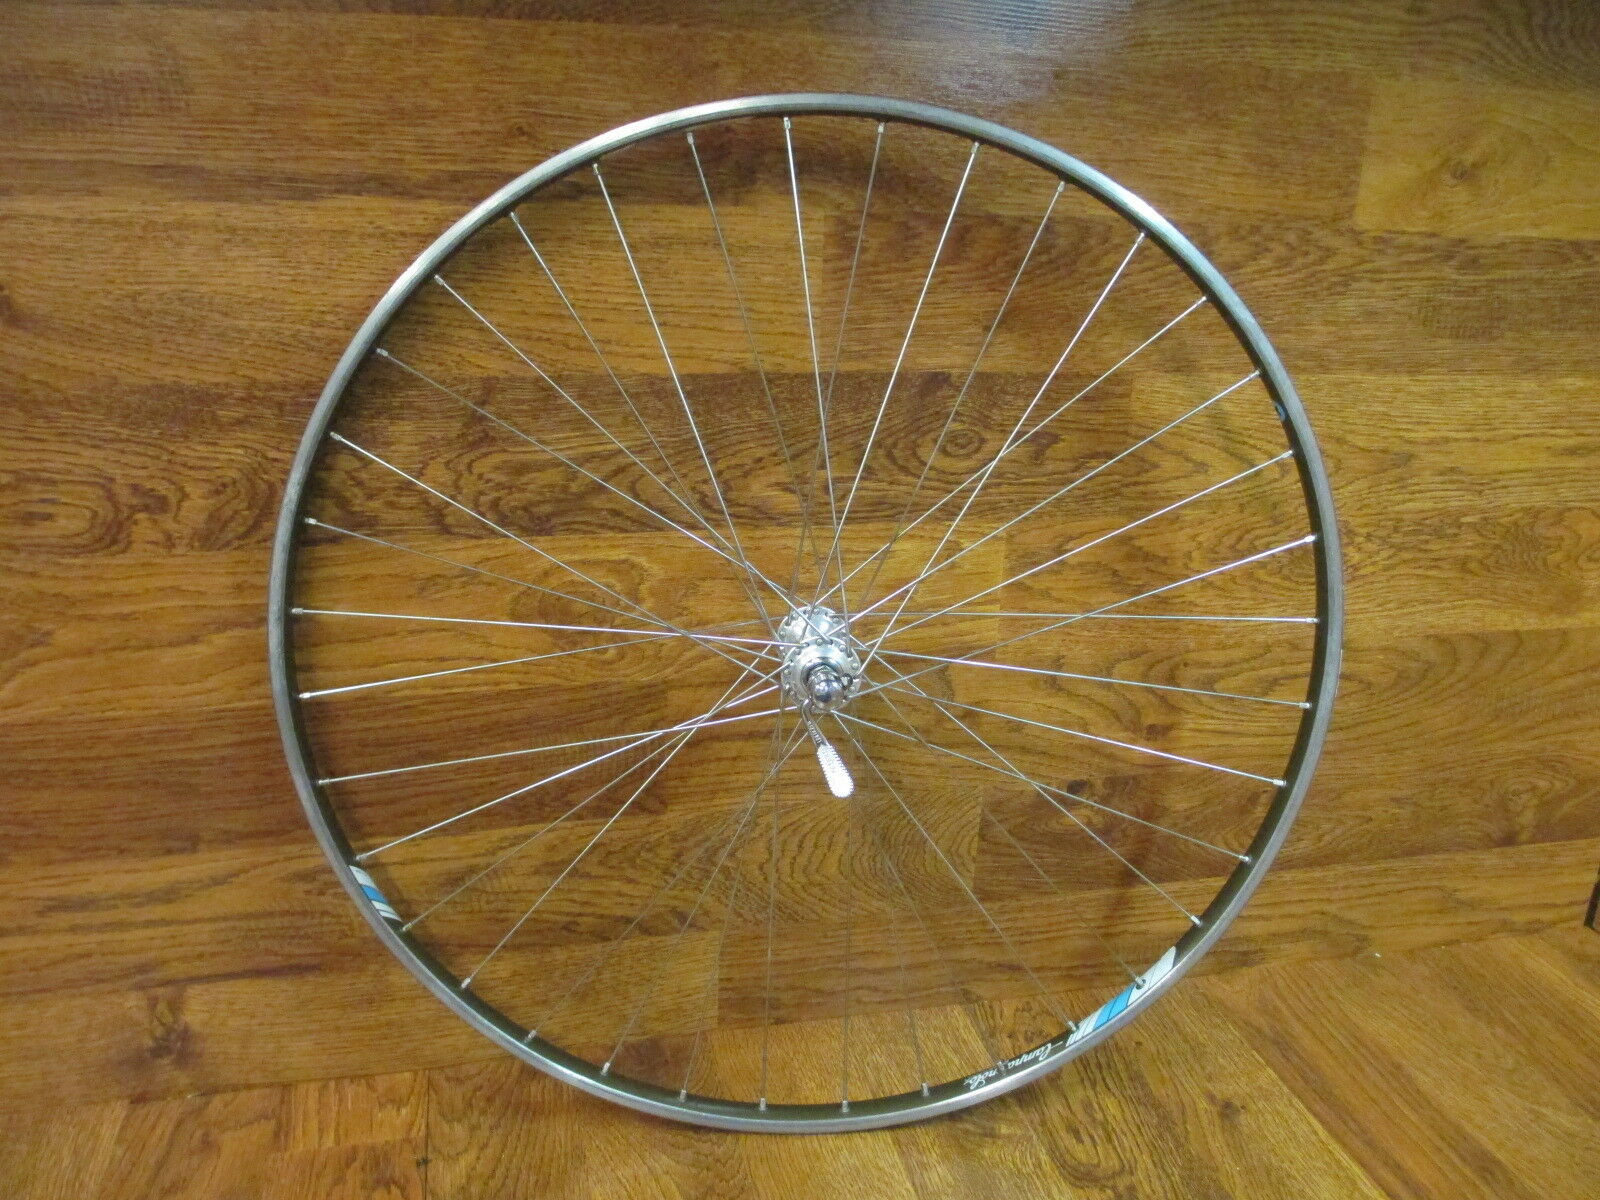 VINTAGE CAMPAGNOLO SIGMA STRADA HARDOX 36H RECORD  TUBULAR FRONT WHEEL  timeless classic